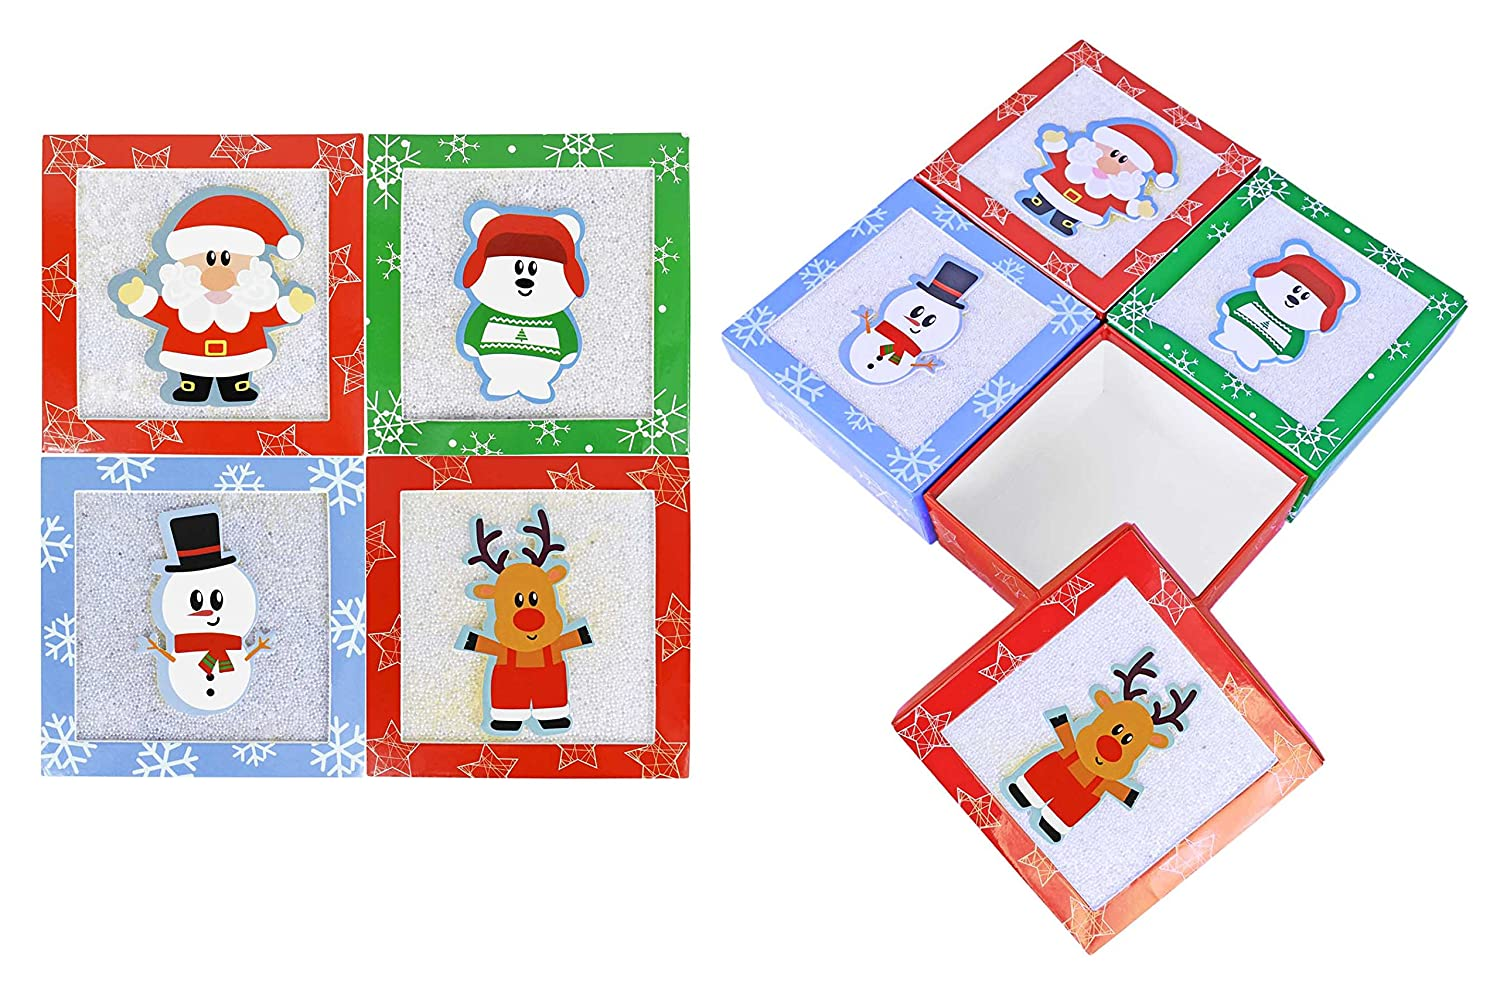 Set of 8 Christmas/Holiday Money/Gift Card Holder Gift Boxes 4.5' x 2.5' With Pop-up Christmas Characters and Sugaring Texture! Black Duck Brand